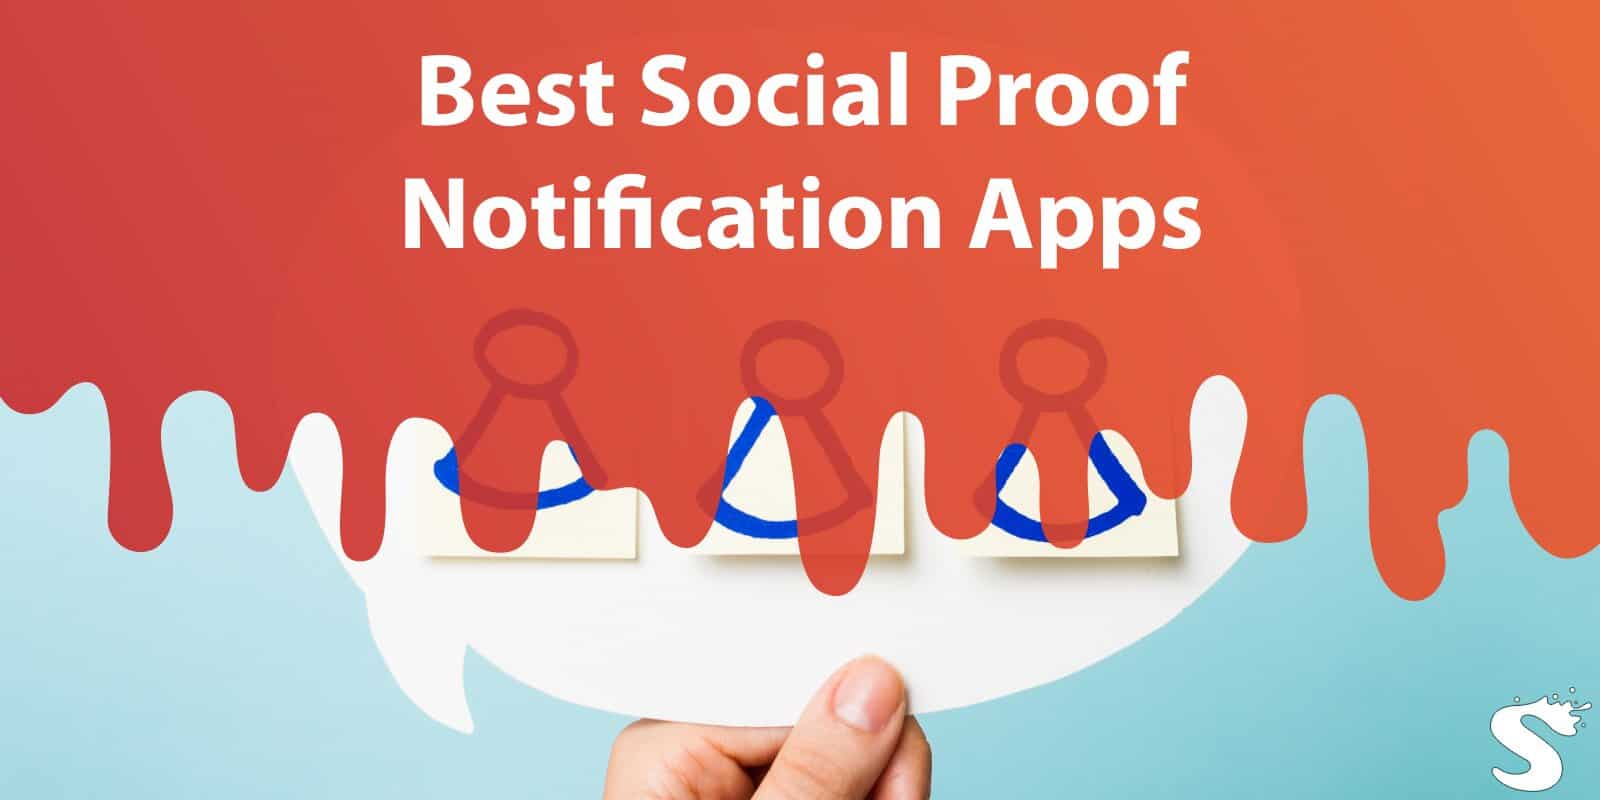 Best Social Proof Notification Apps